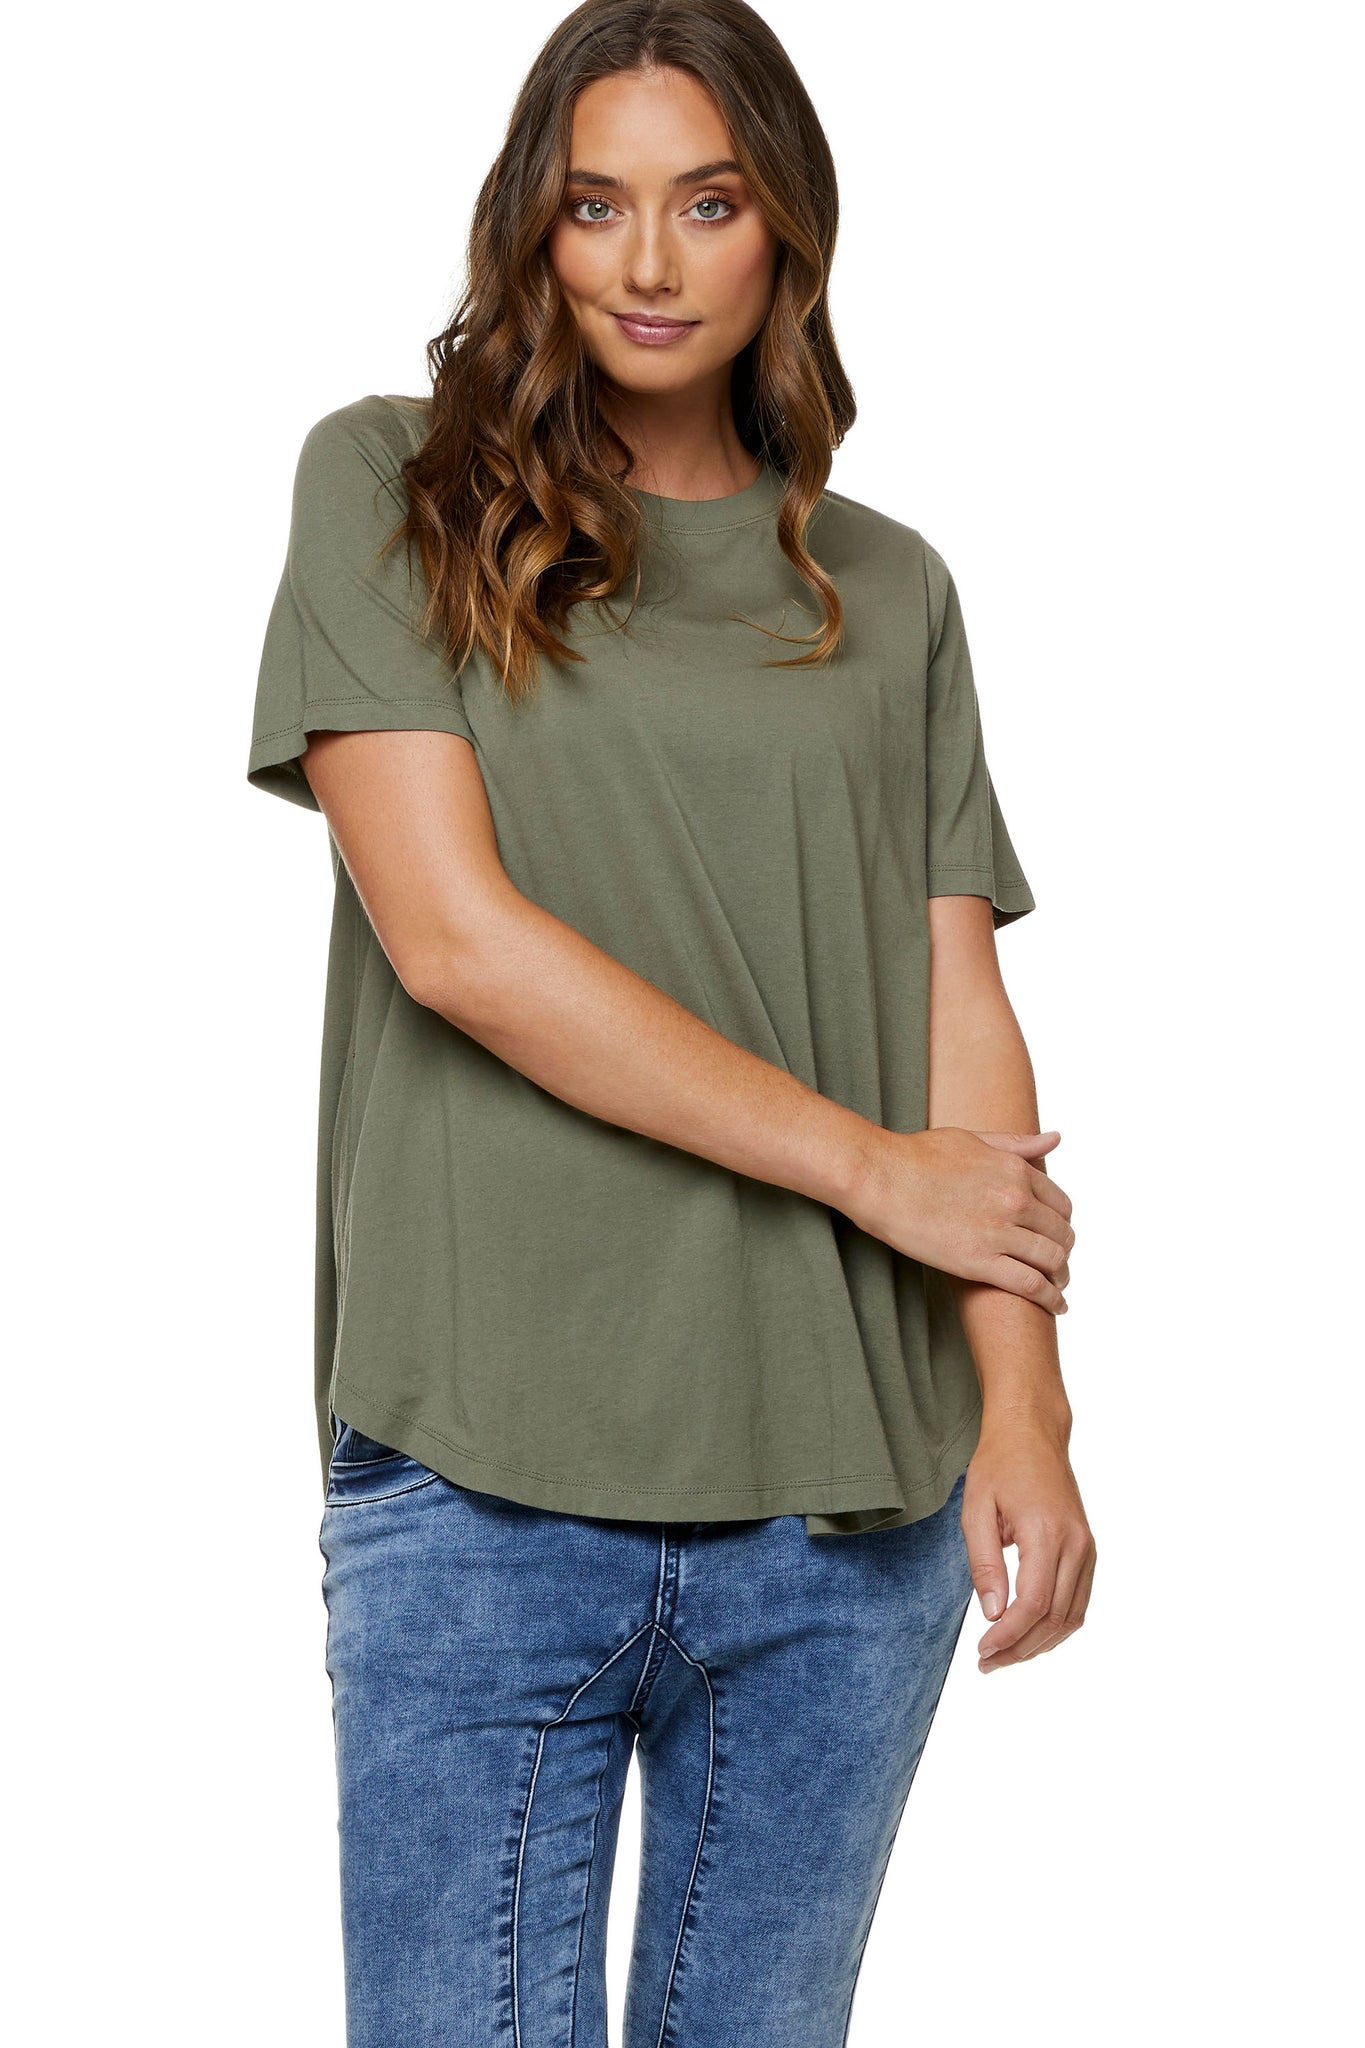 Khaki maternity t-shirt - Maternity top 5